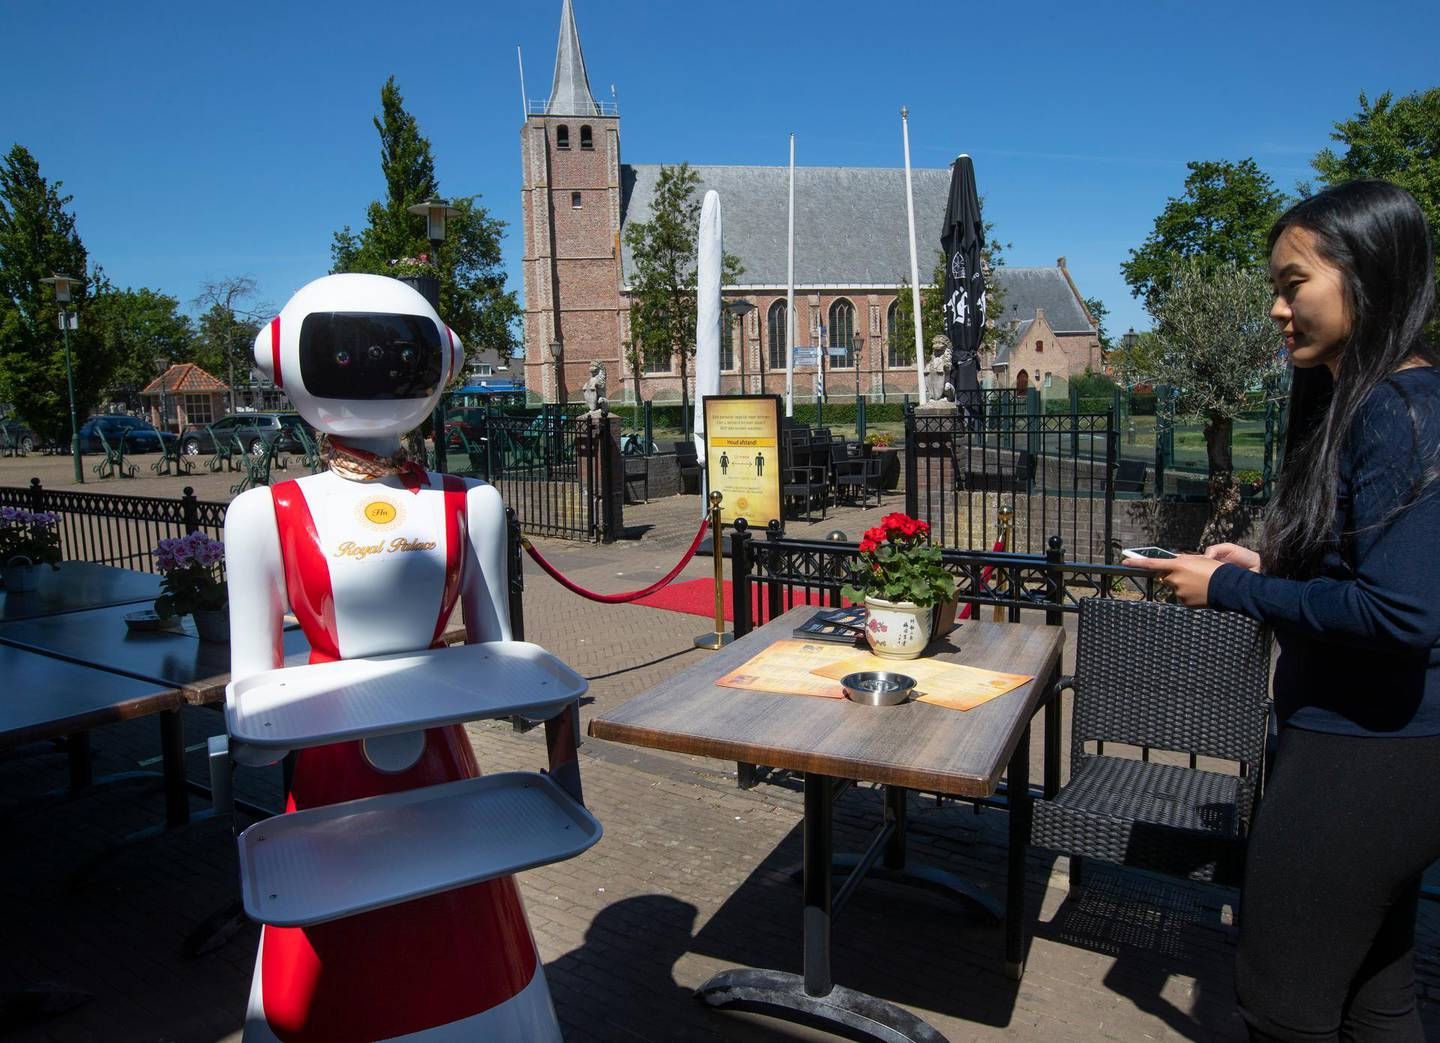 Leah Hu uses a tablet to demonstrate the use of a robot for serving purposes or for dirty dishes collection, as part of a tryout of measures to respect social distancing and help curb the spread of the COVID-19 coronavirus, at the family's Royal Palace restaurant in Renesse, south-western Netherlands, Wednesday, May 27, 2020. (AP Photo/Peter Dejong)